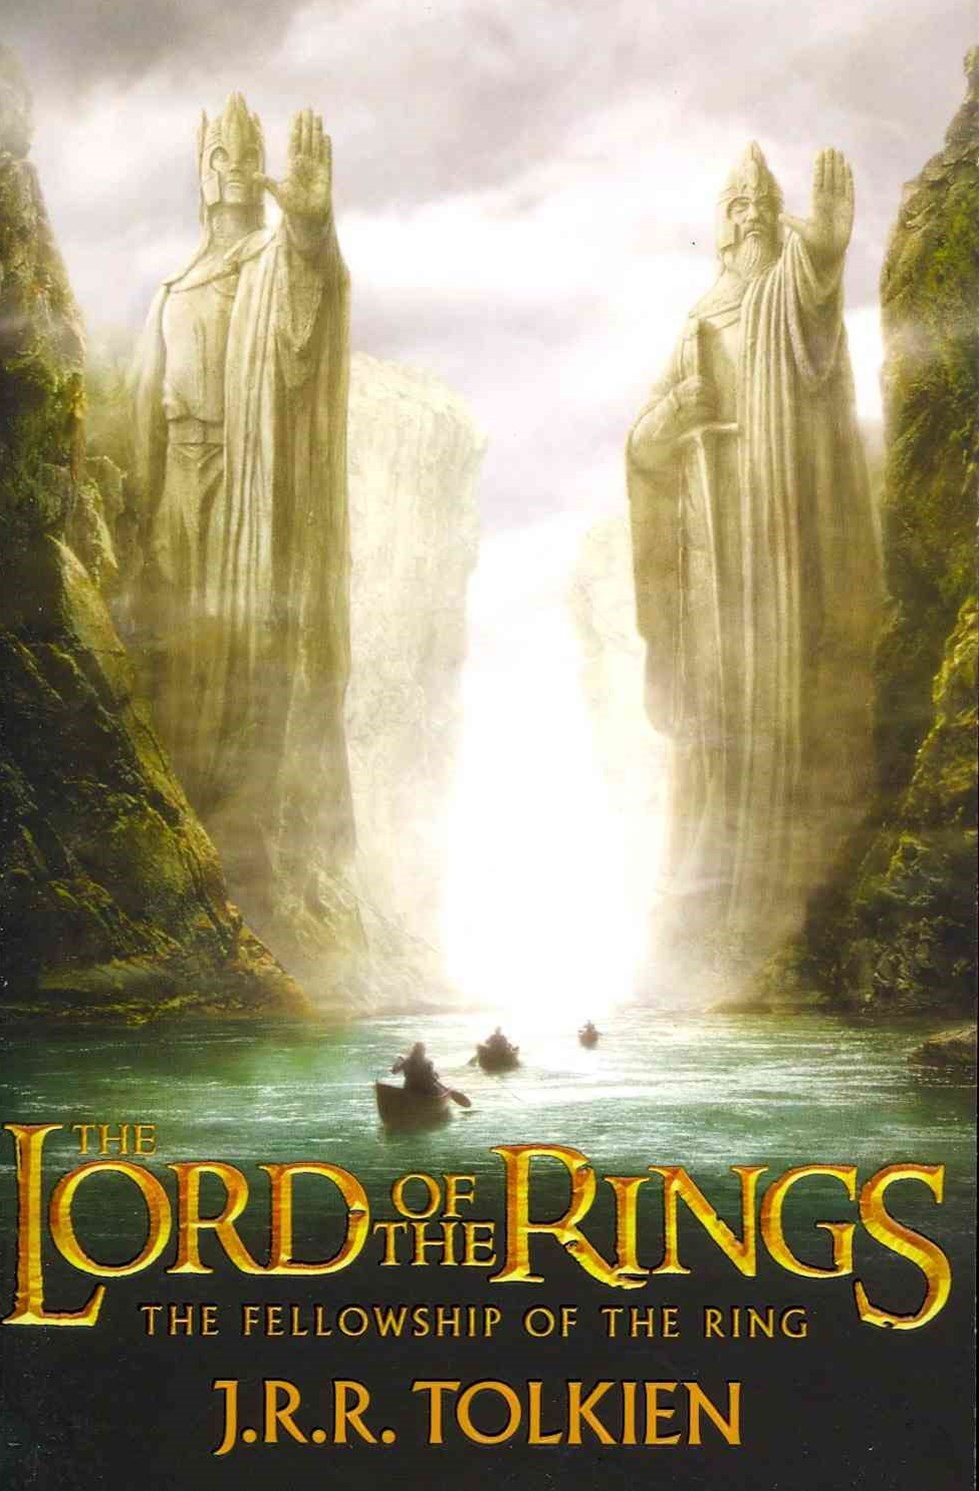 Lord of the Rings, Part 1: The Fellowship Of The Ring [Film Tie-In Edition]